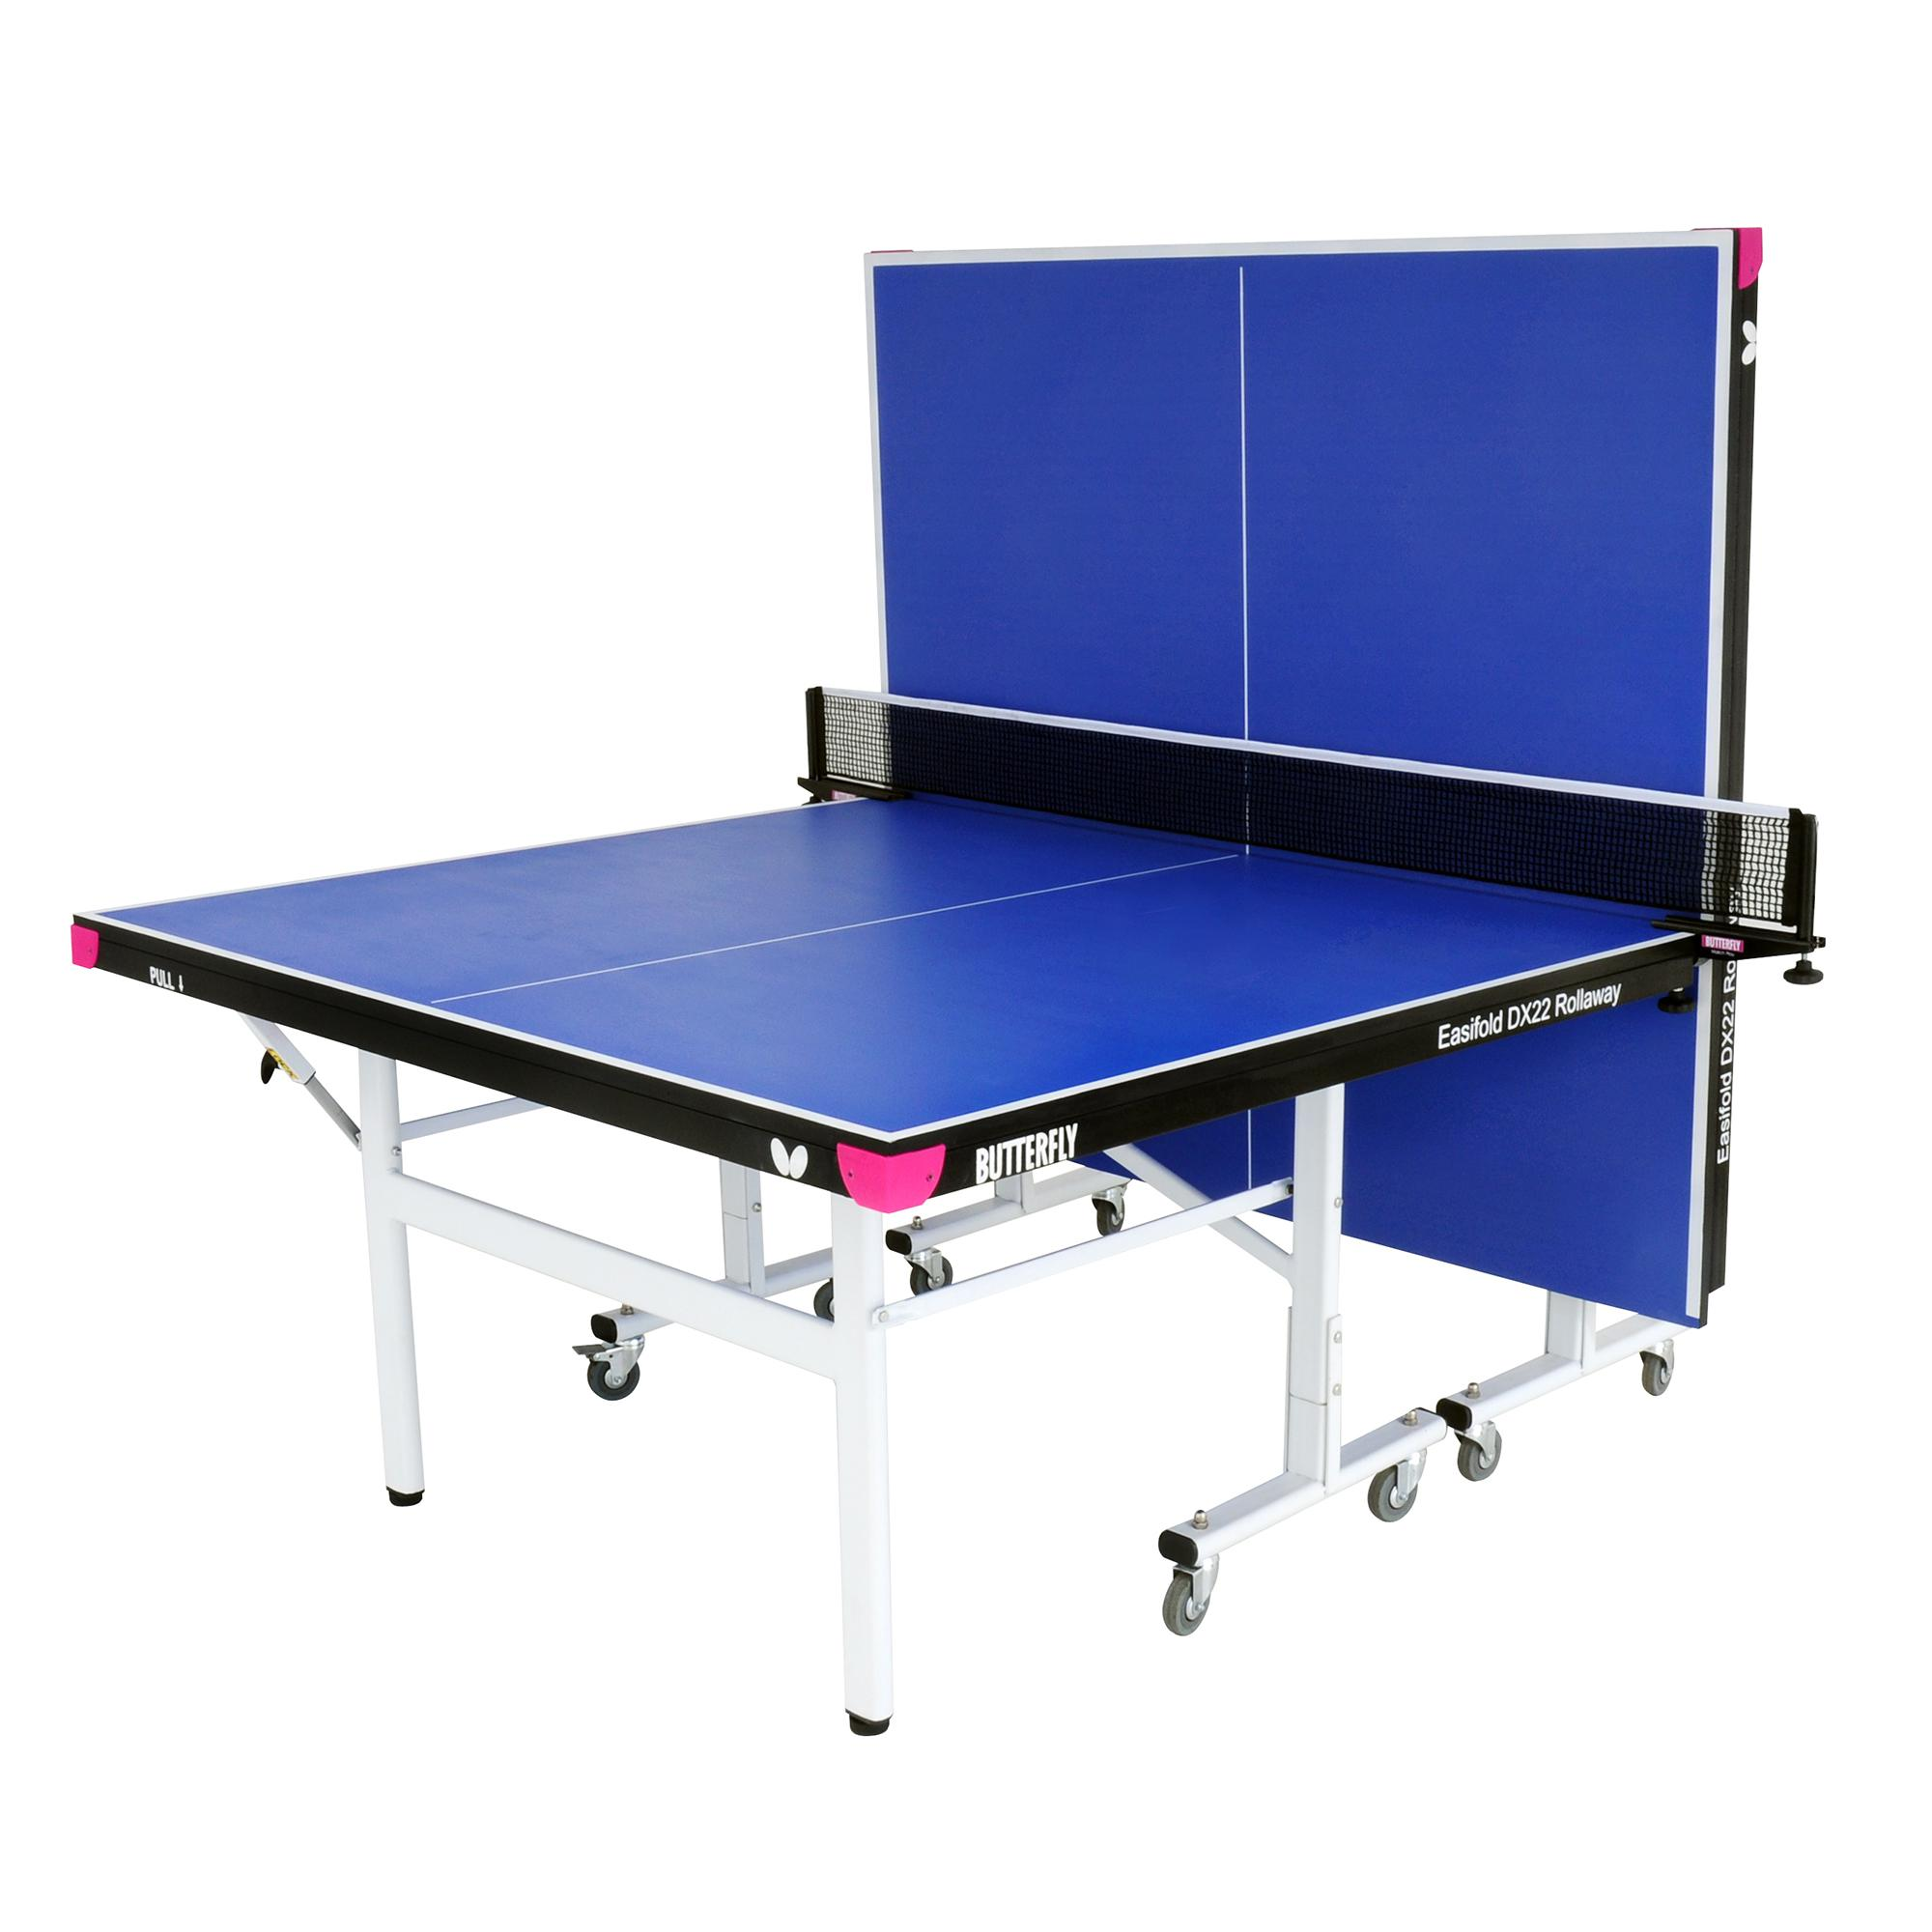 Butterfly easifold deluxe 22mm rollaway indoor table for Table tennis 99